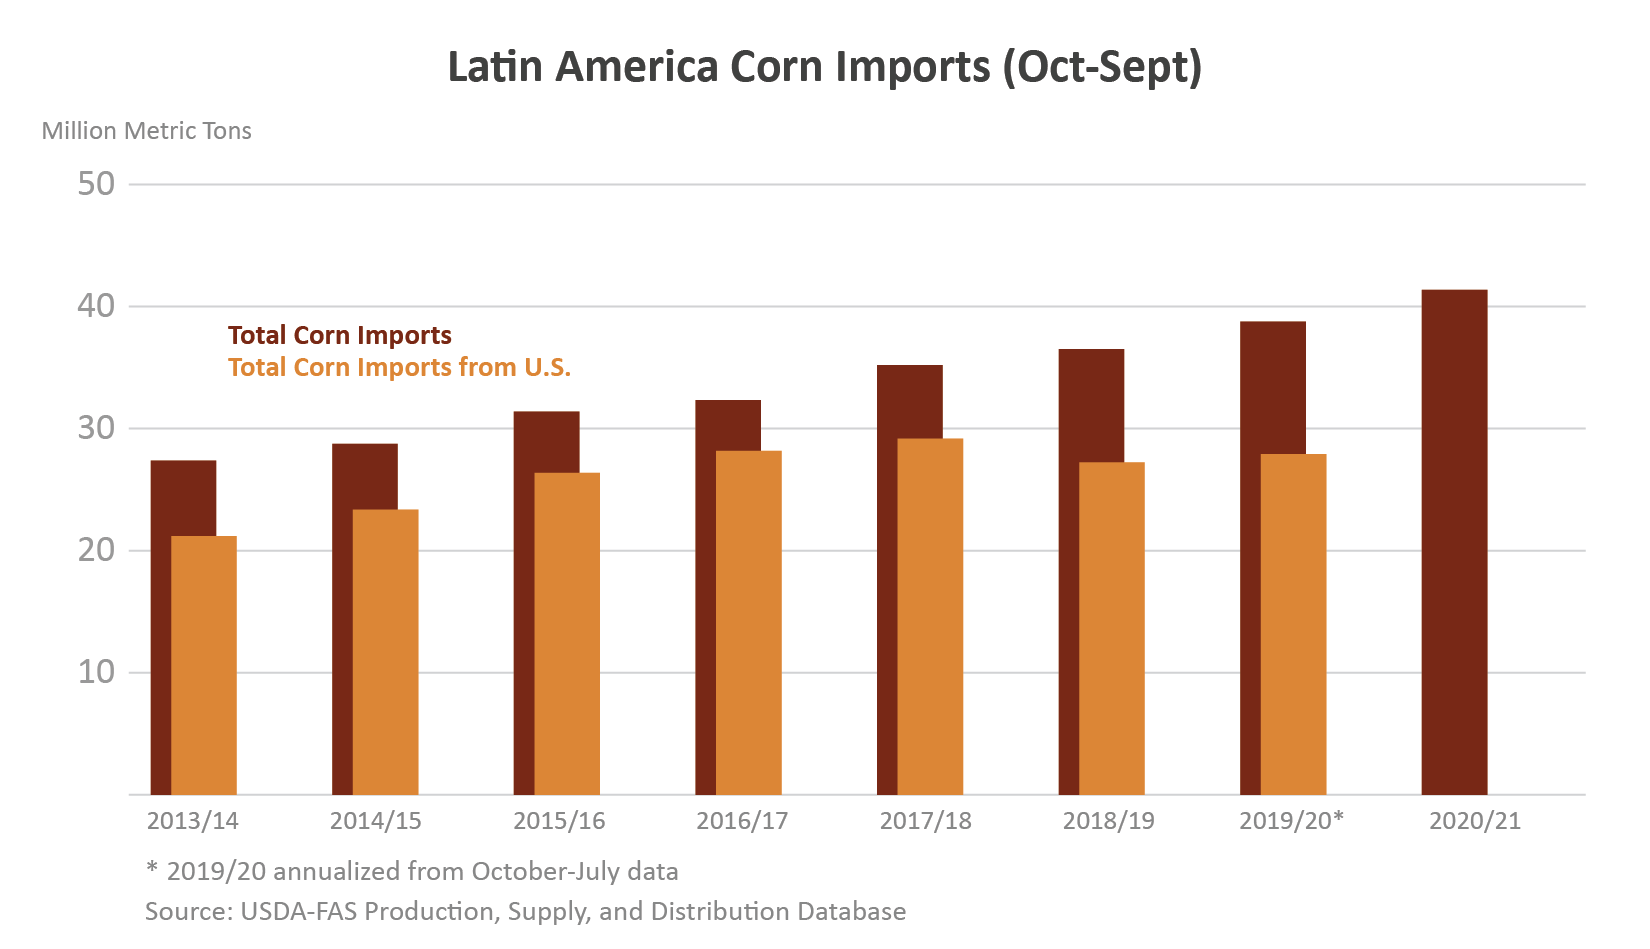 Column chart showing corn imports to Latin America from FY2013 - FY2021